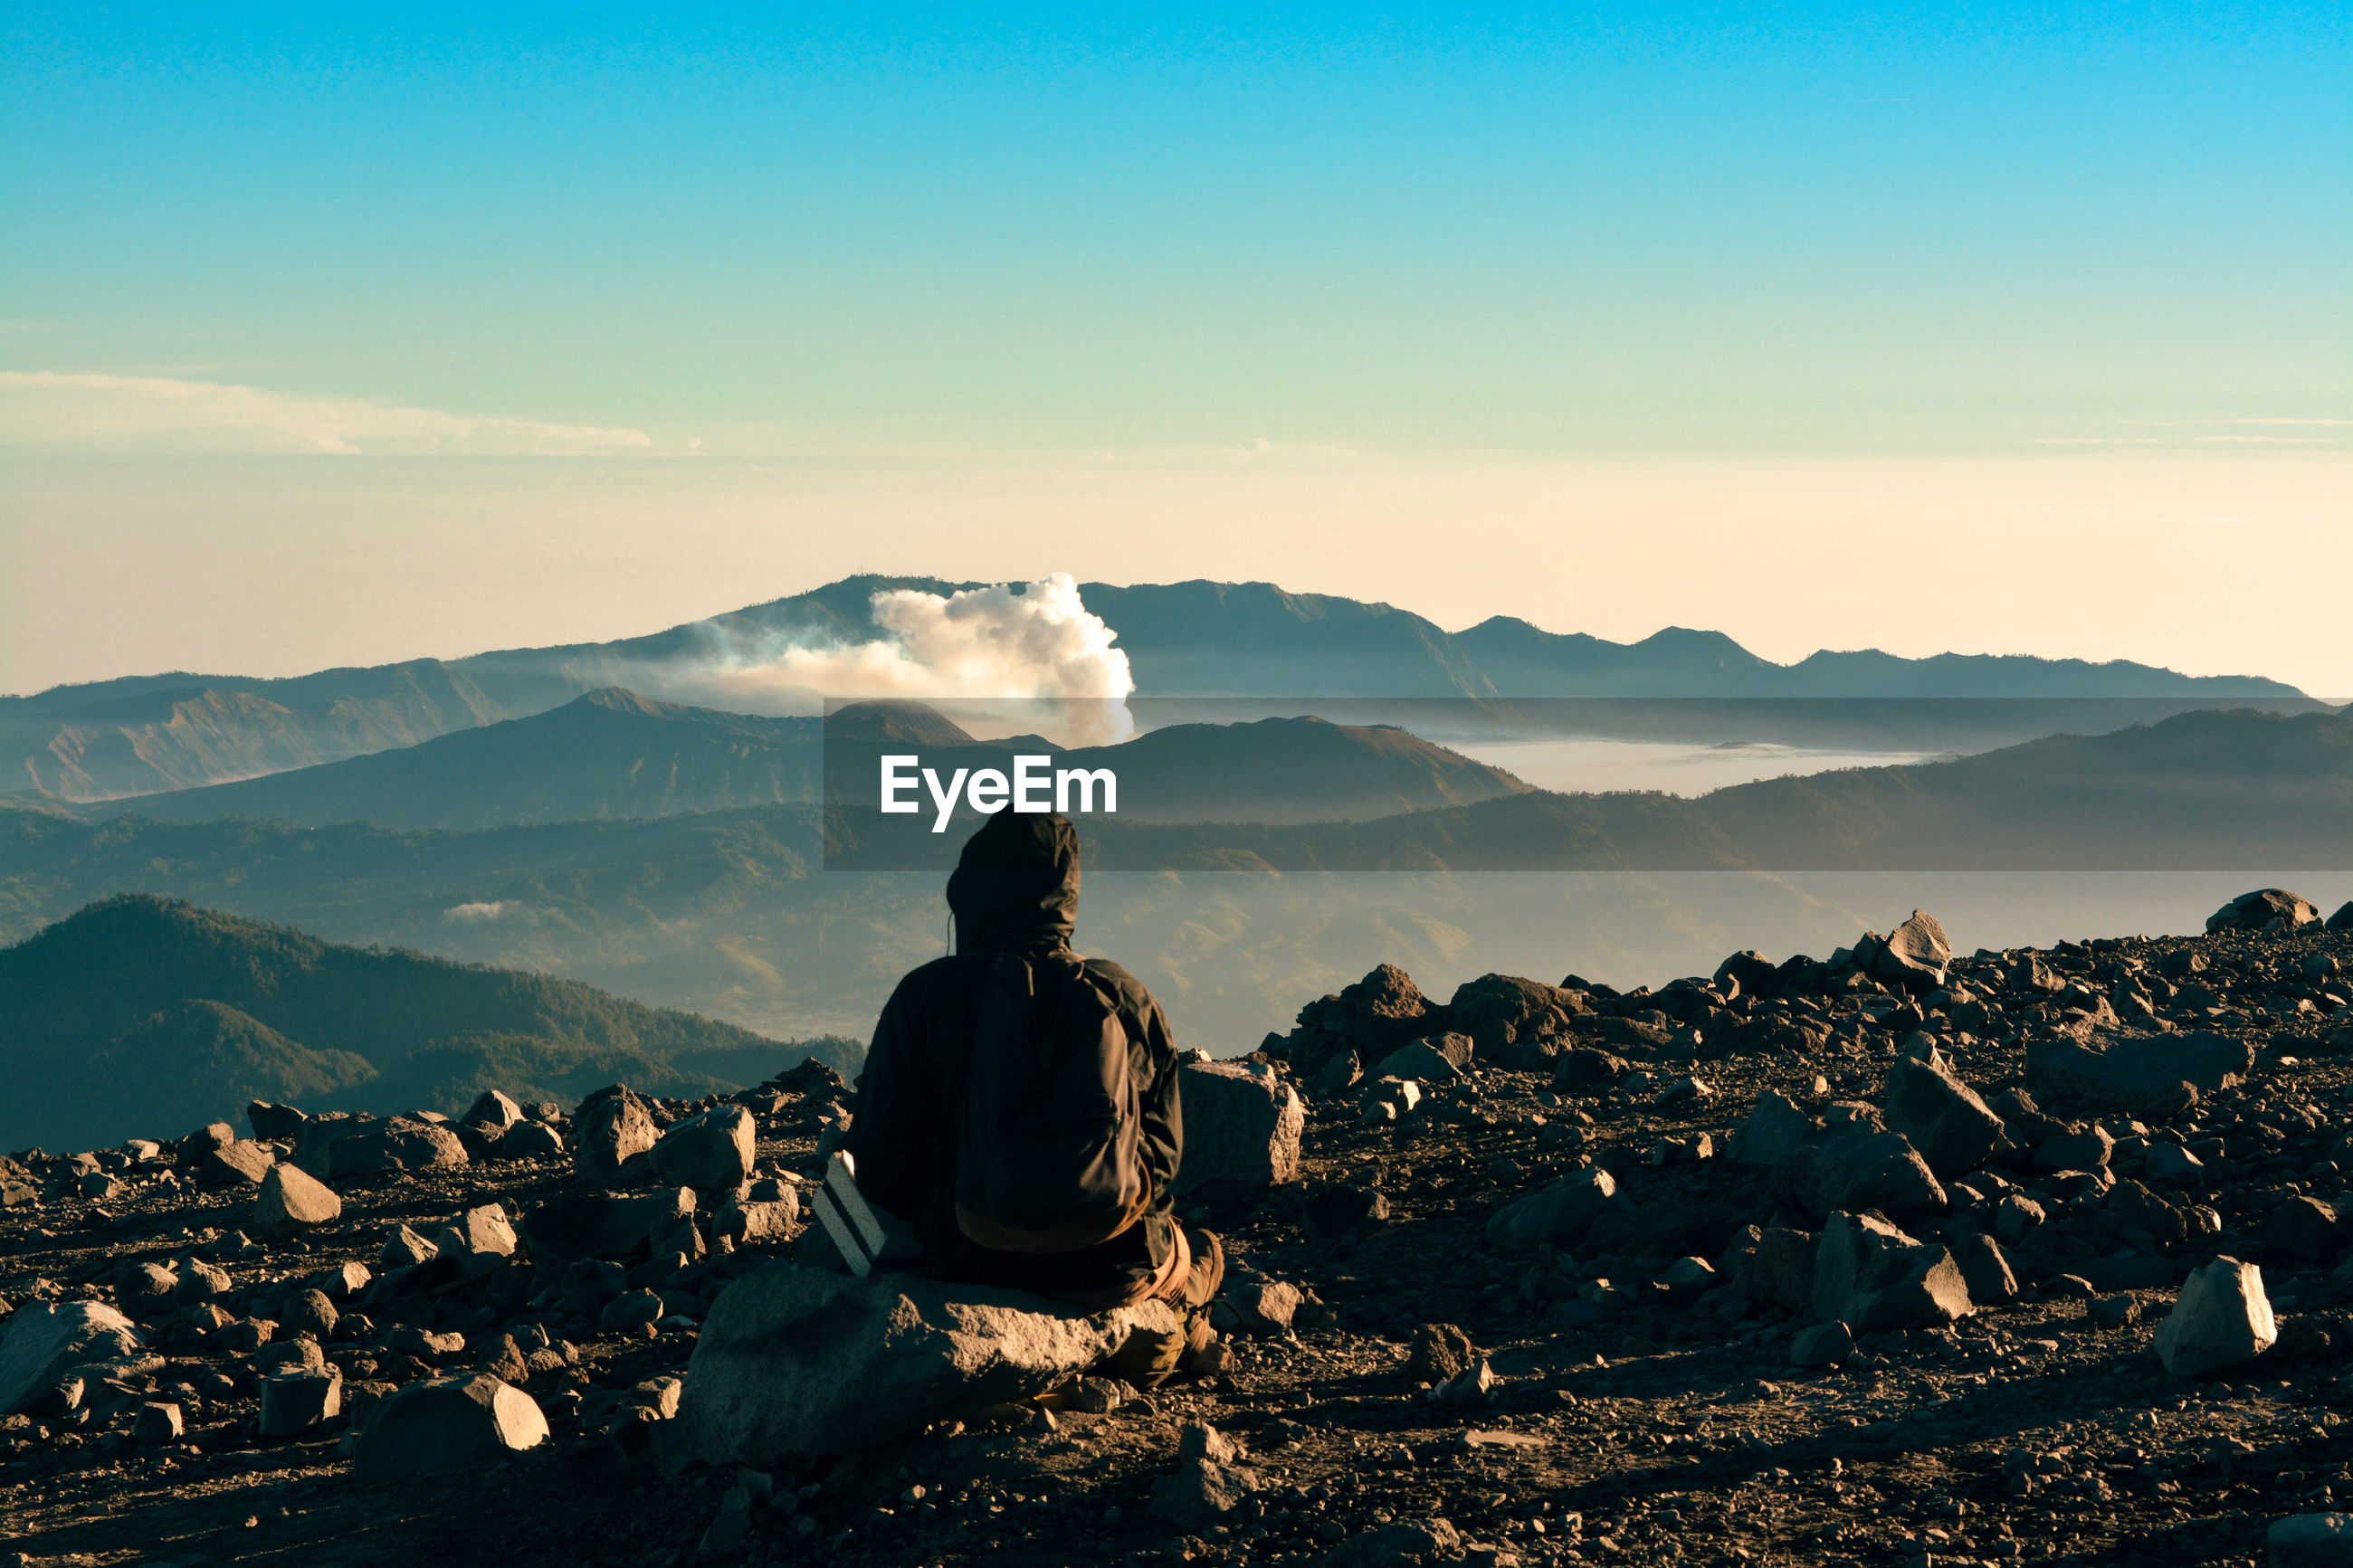 Rear view of person sitting on rock against mountain and sky